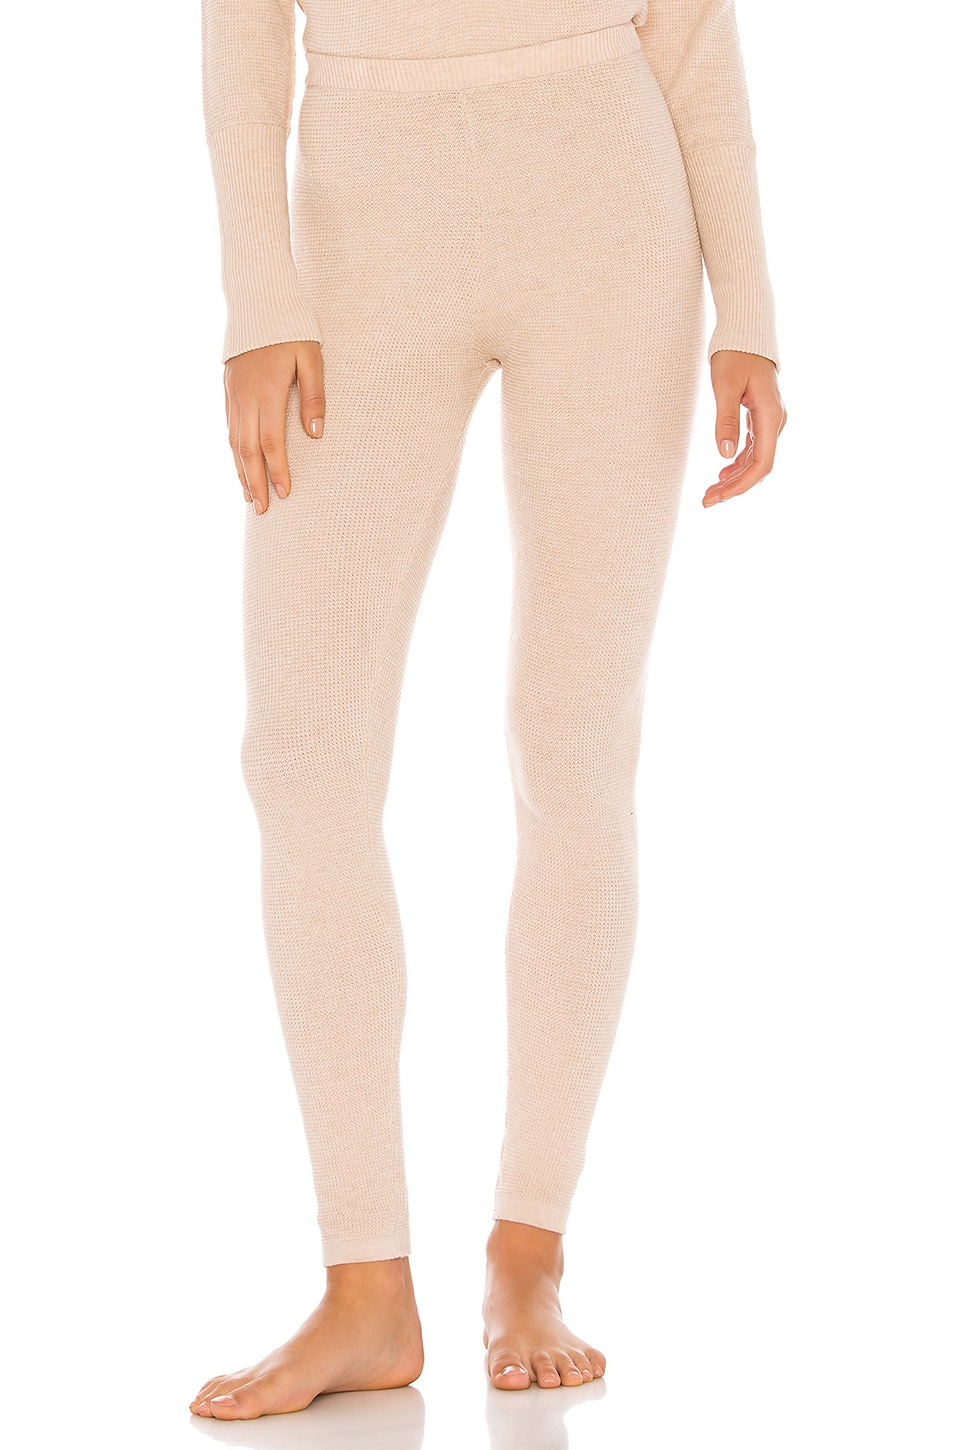 Free People Think Thermal Legging in Neutral